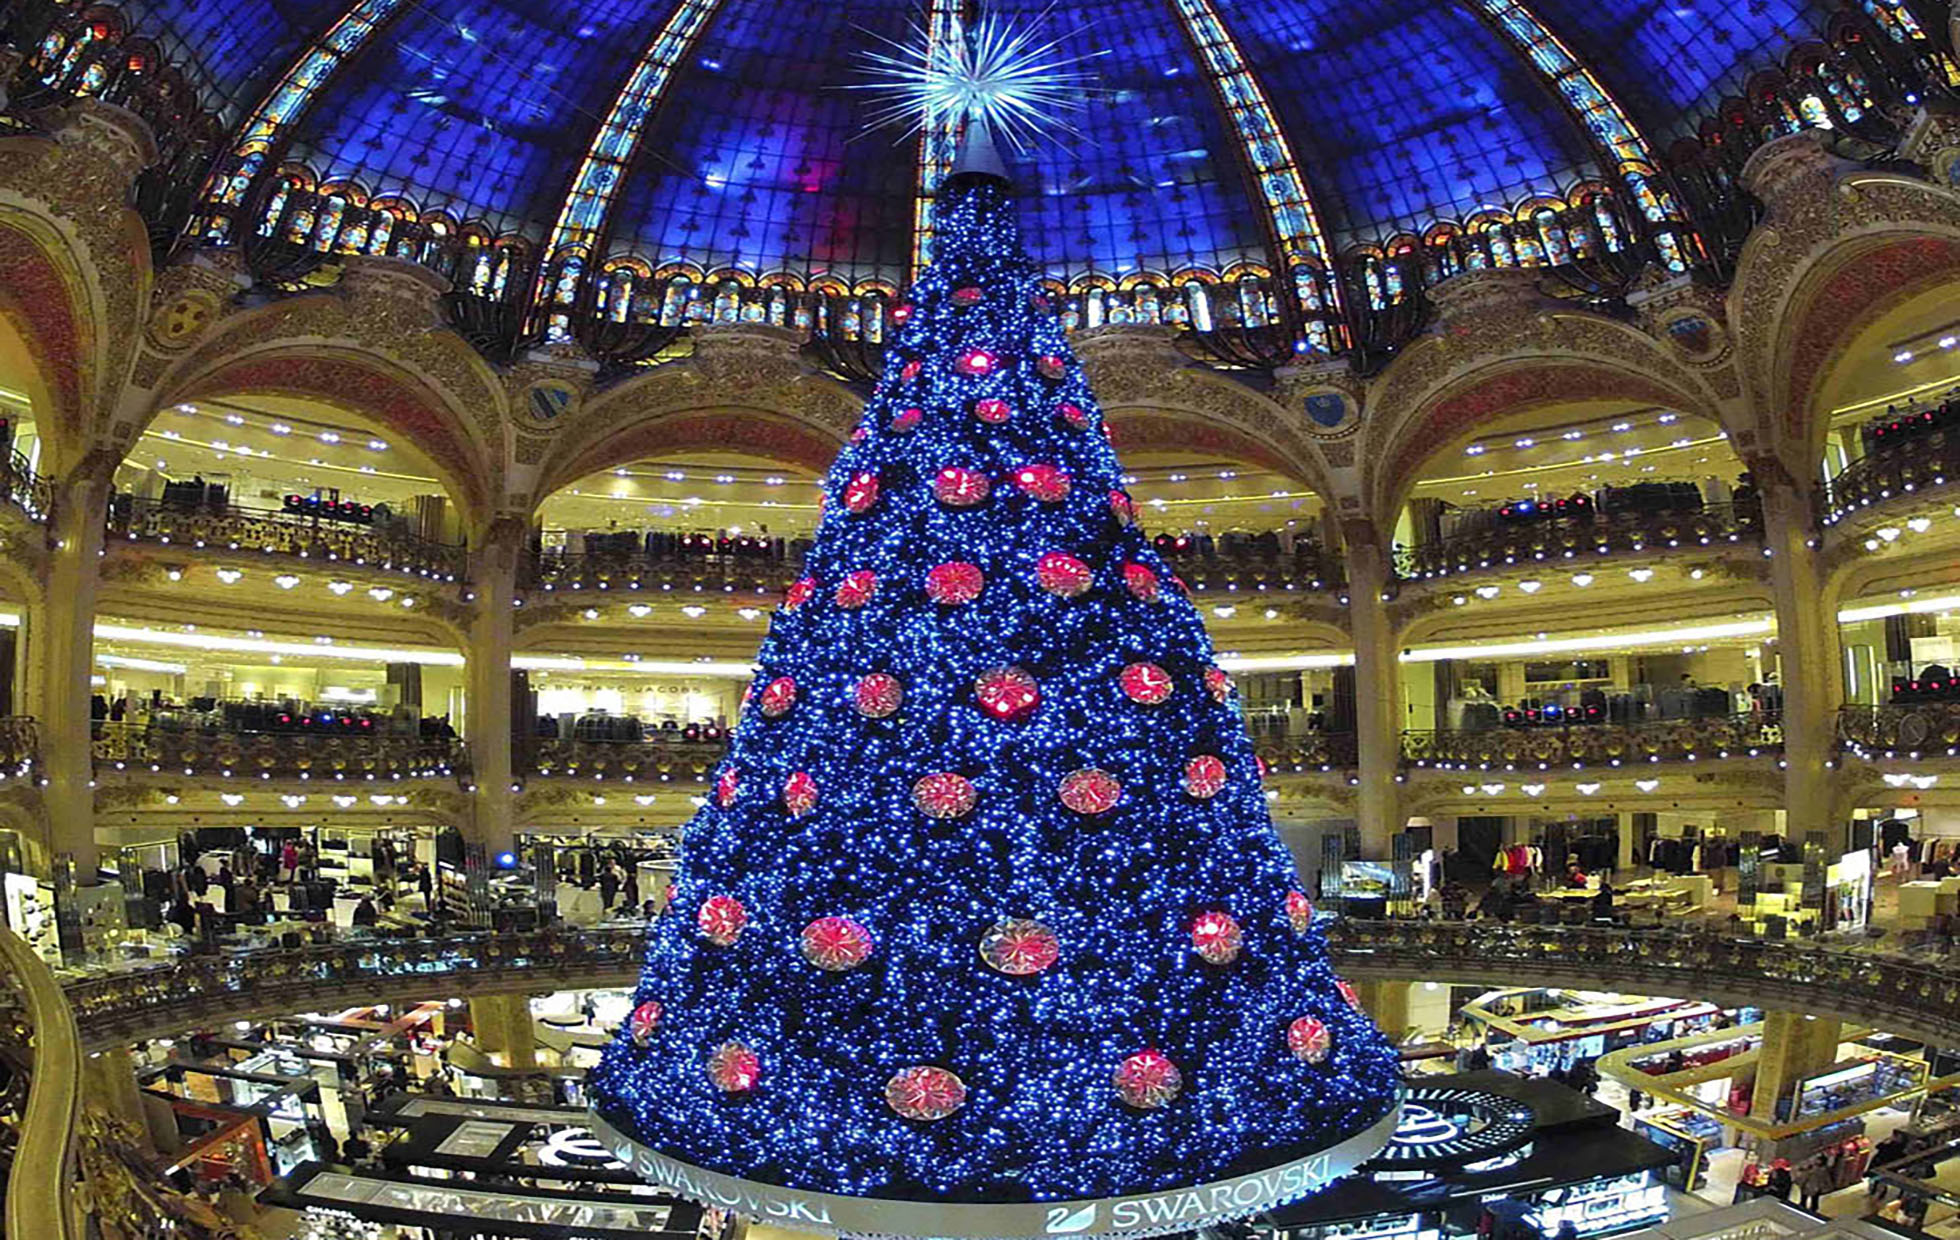 A giant Christmas tree stands in the middle of the Galeries Lafayette department store in Paris ahead of the holiday season in the French capital, December 13, 2012. REUTERS/Charles Platiau (FRANCE - Tags: SOCIETY)